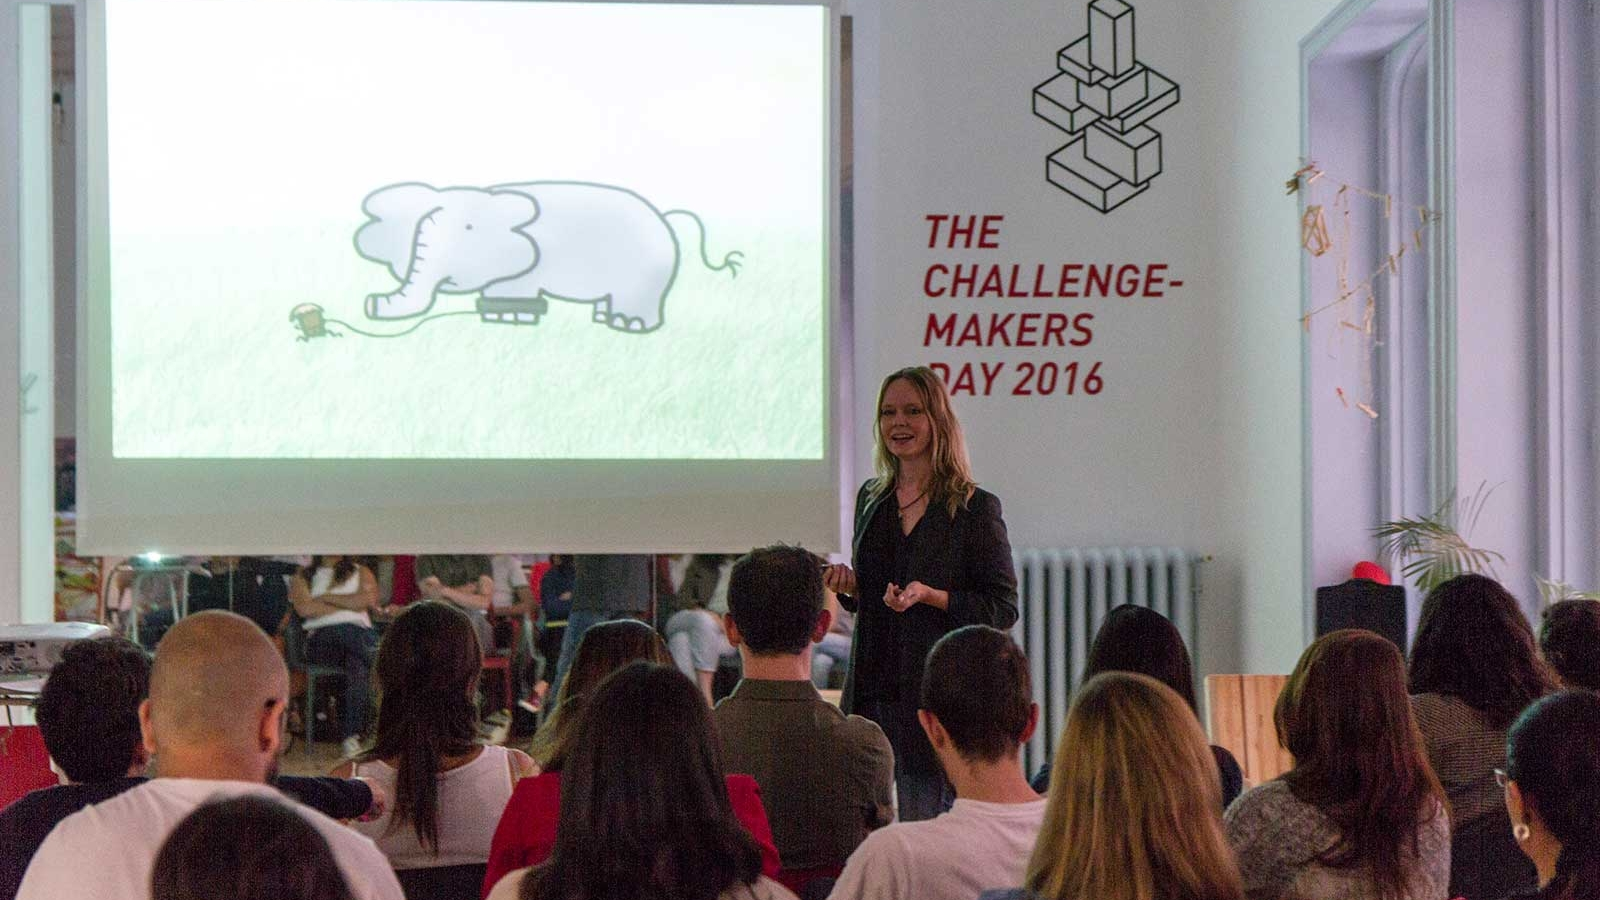 The Masters of Design and Innovation enjoyed a new edition of The Challengemakers Day